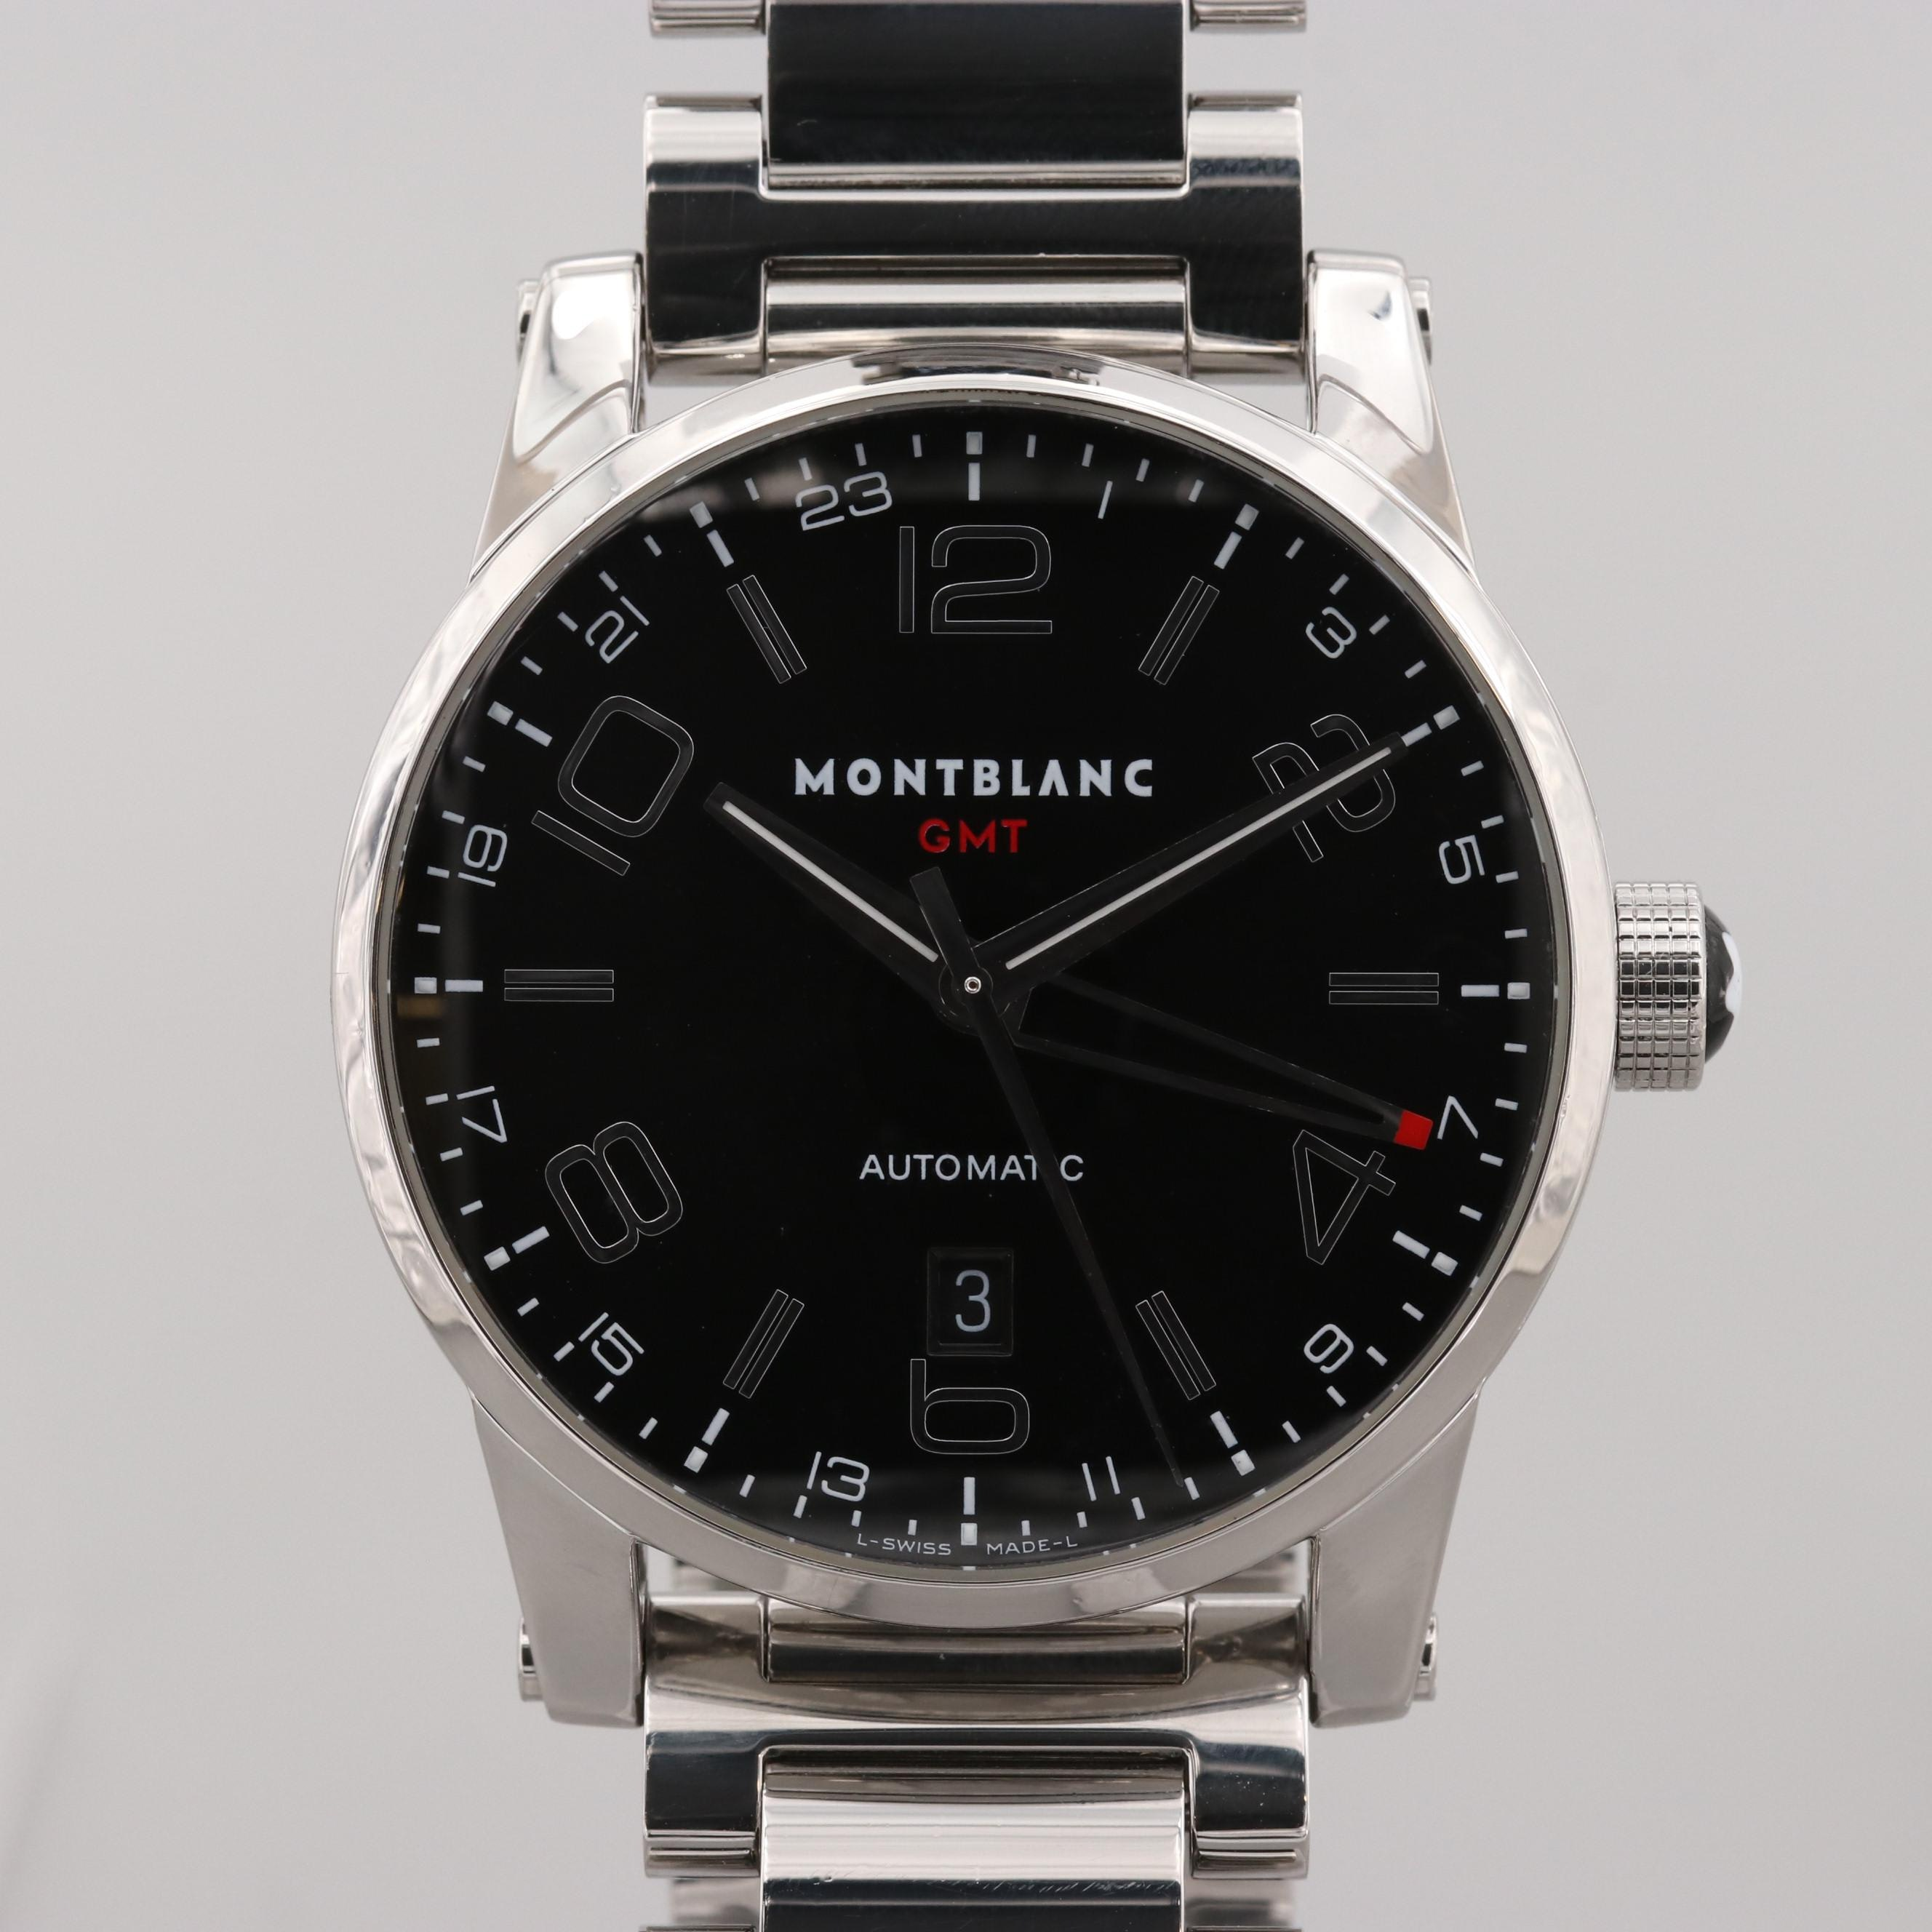 Montblanc TimeWalker GMT Stainless Steel Automatic Wristwatch